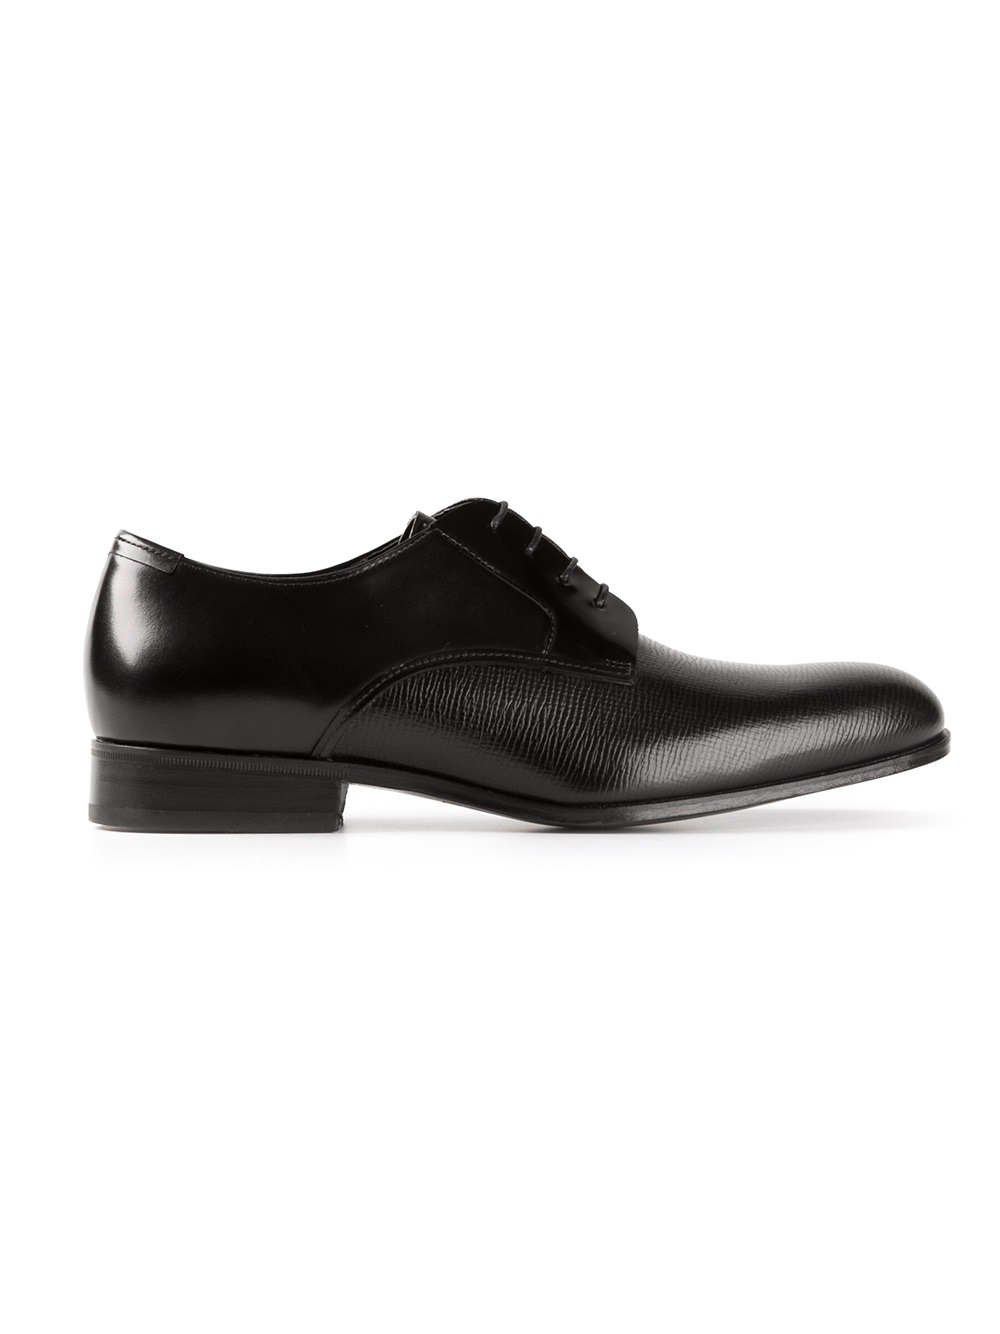 Lanvin classic derby shoes collections for nice cheap online fake sale online 7rzVkDUf6